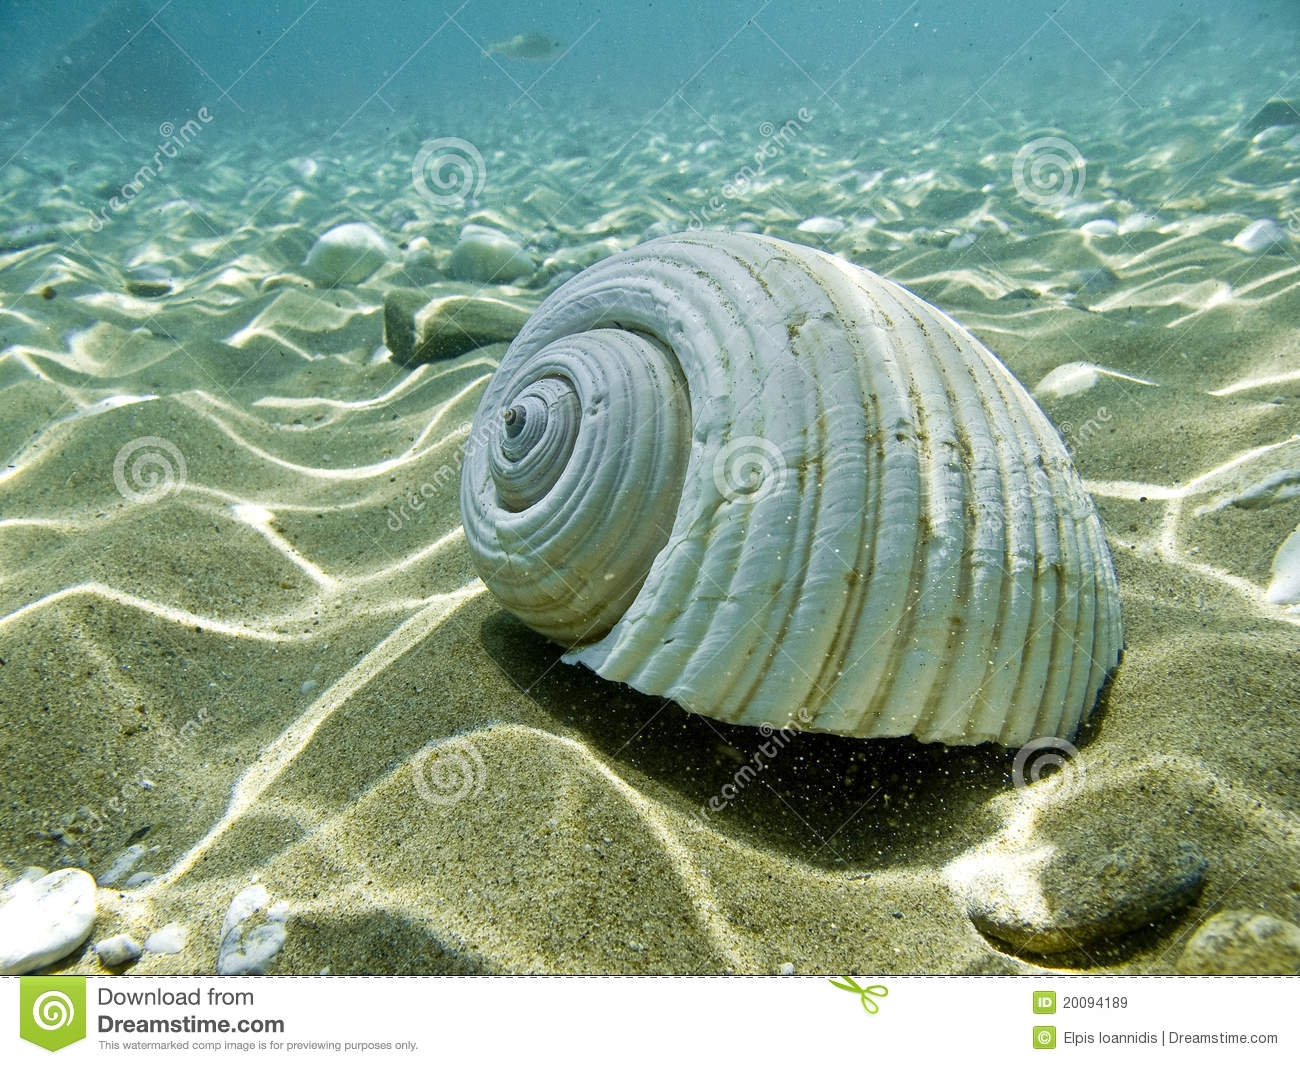 sea shell on a sandy sea bed.